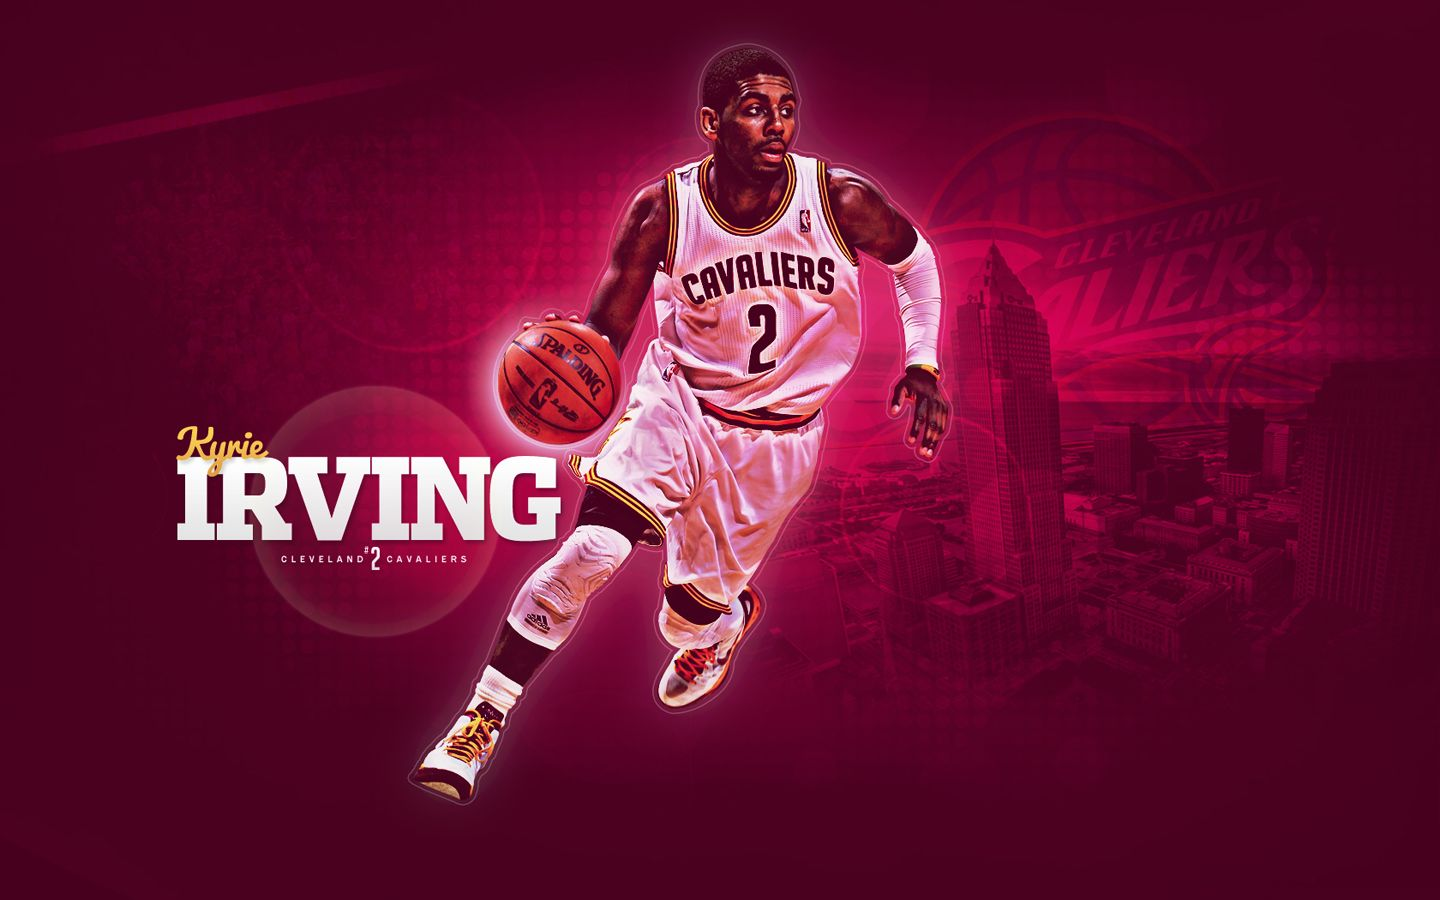 Kyrie Irving Wallpaper Kyrie irving, Irving wallpapers